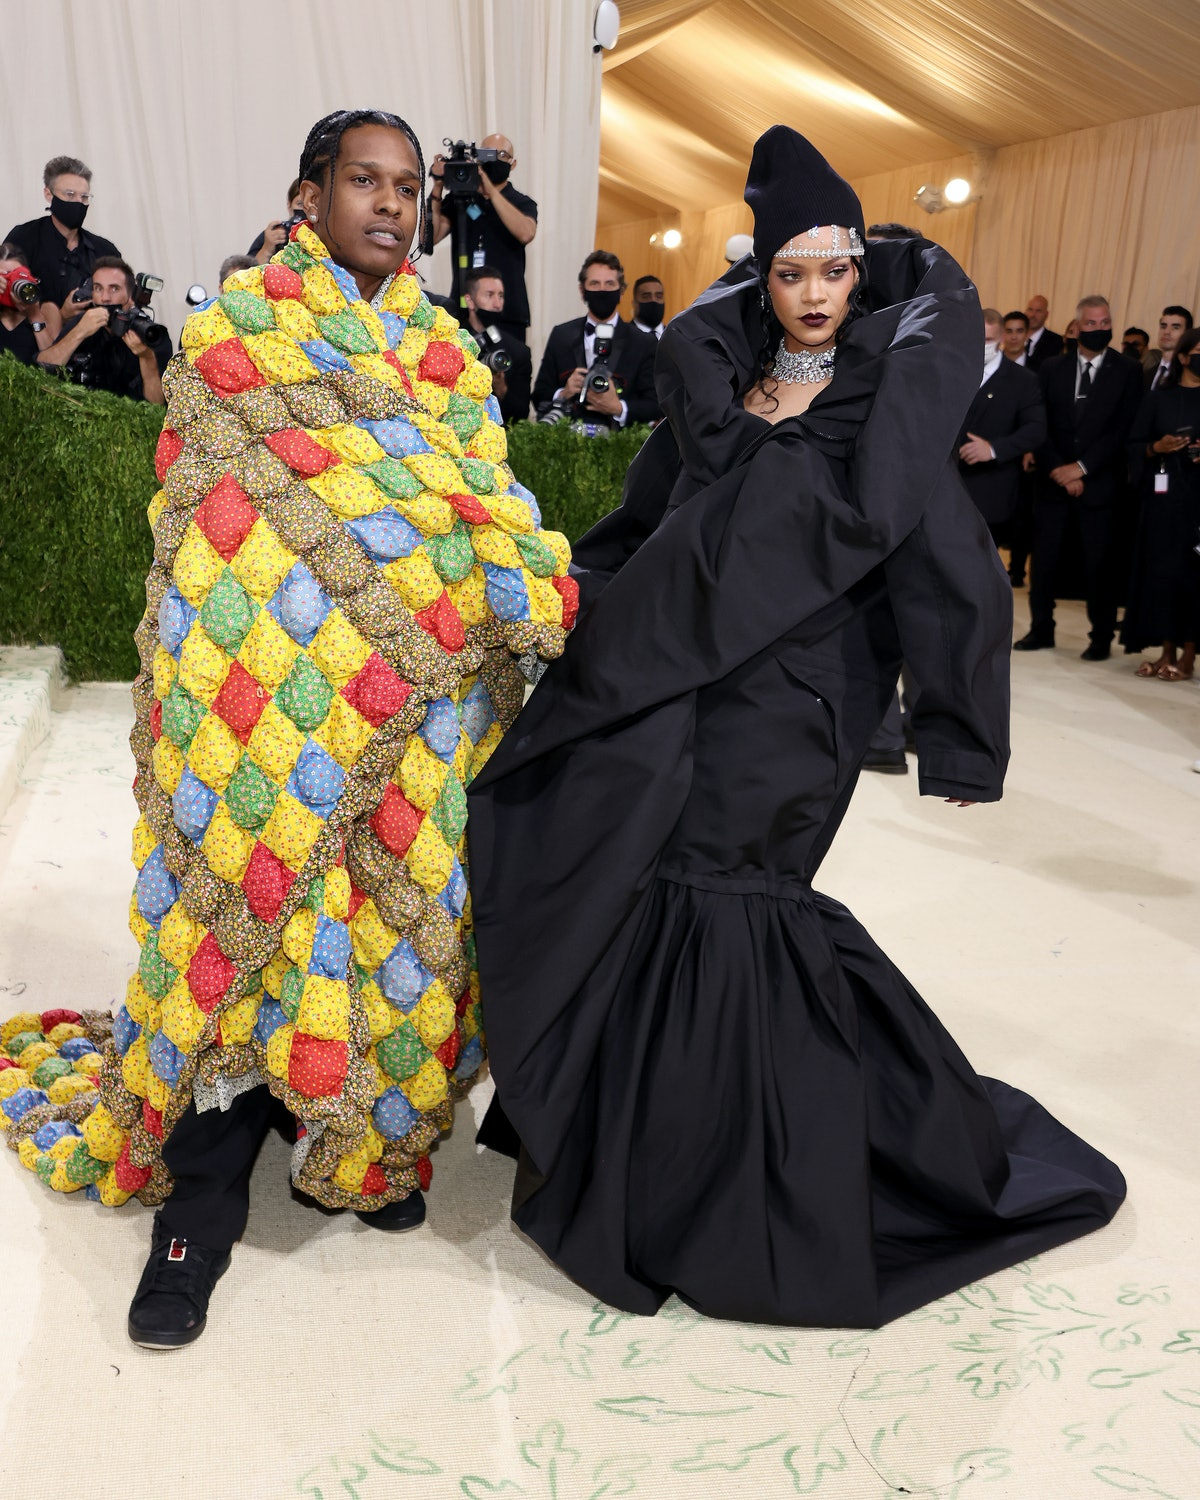 ASAP Rocky and Rihanna attend The 2021 Met Gala Celebrating In America: A Lexicon Of Fashion at Metr...